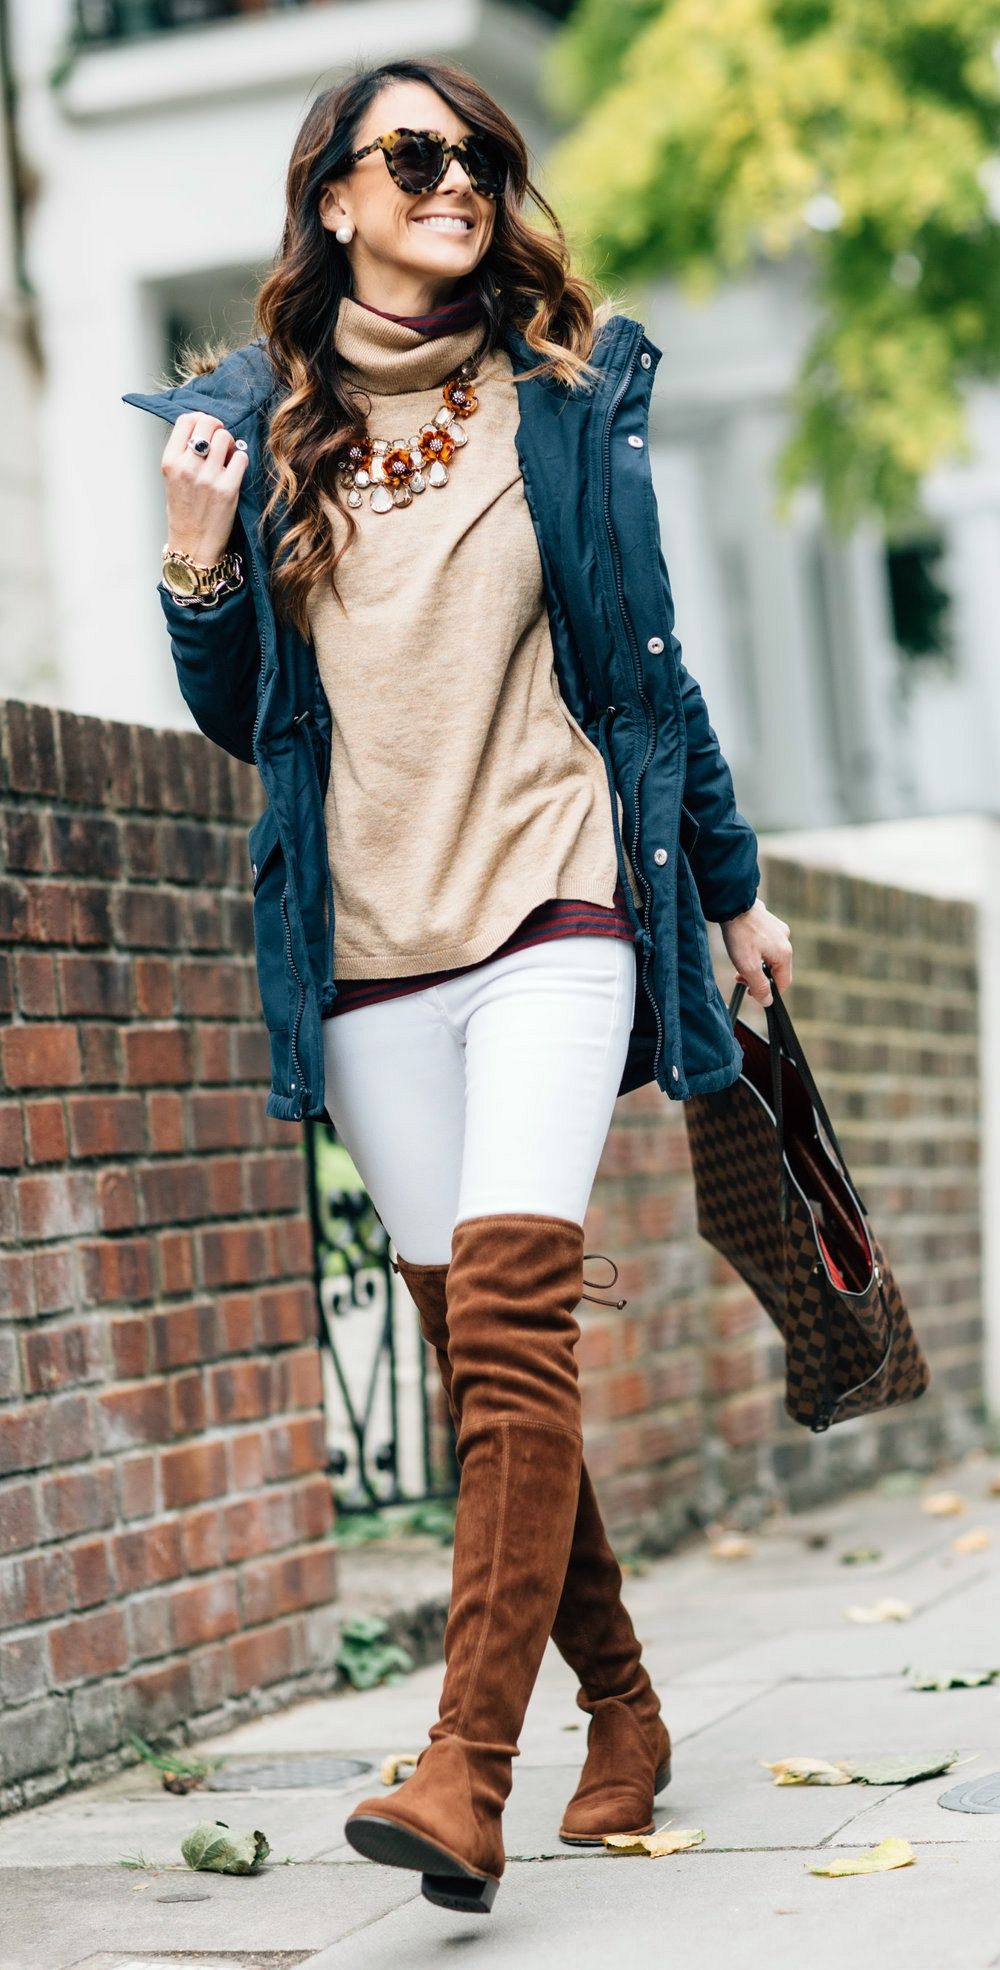 Fashion style Outfit trendy ideas photo for girls